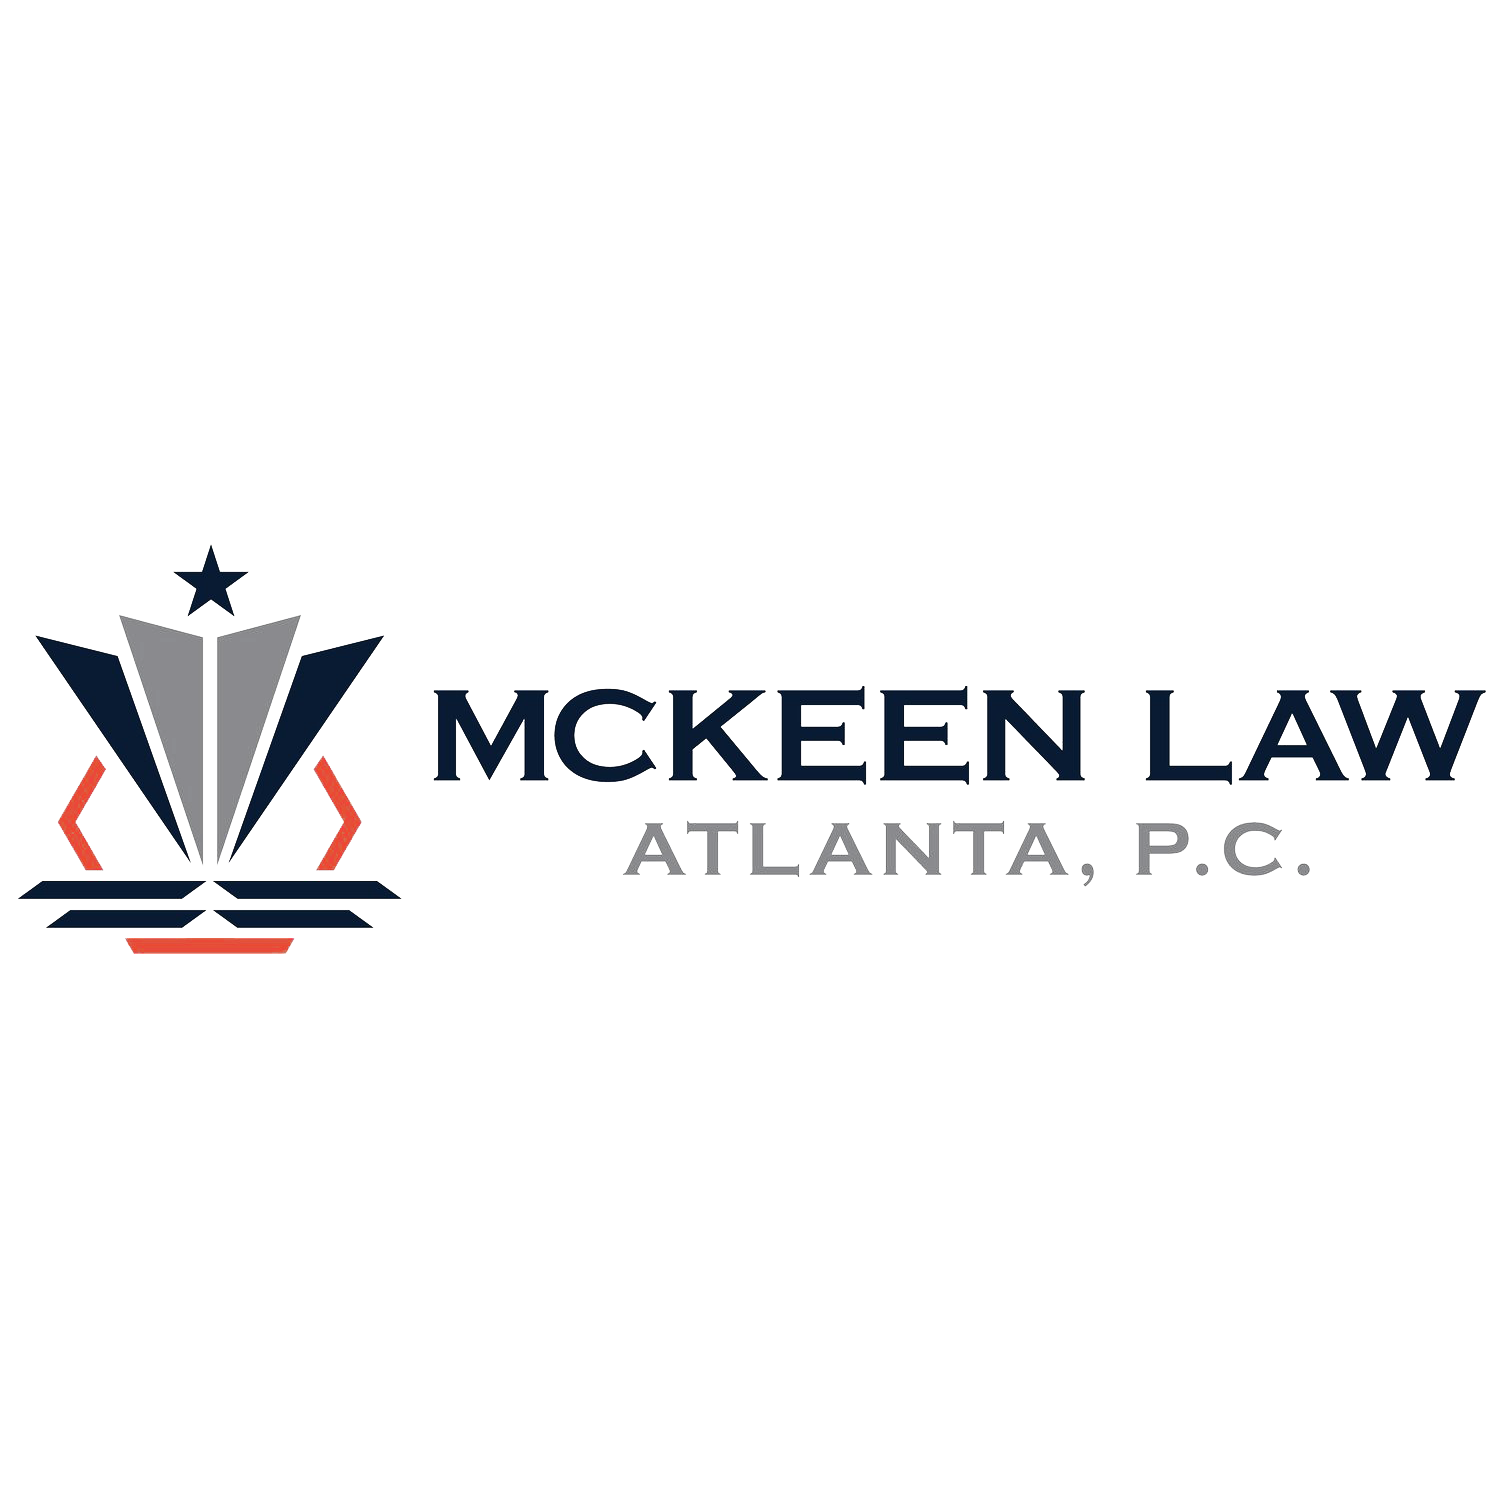 McKeen Law Atlanta, P.C.